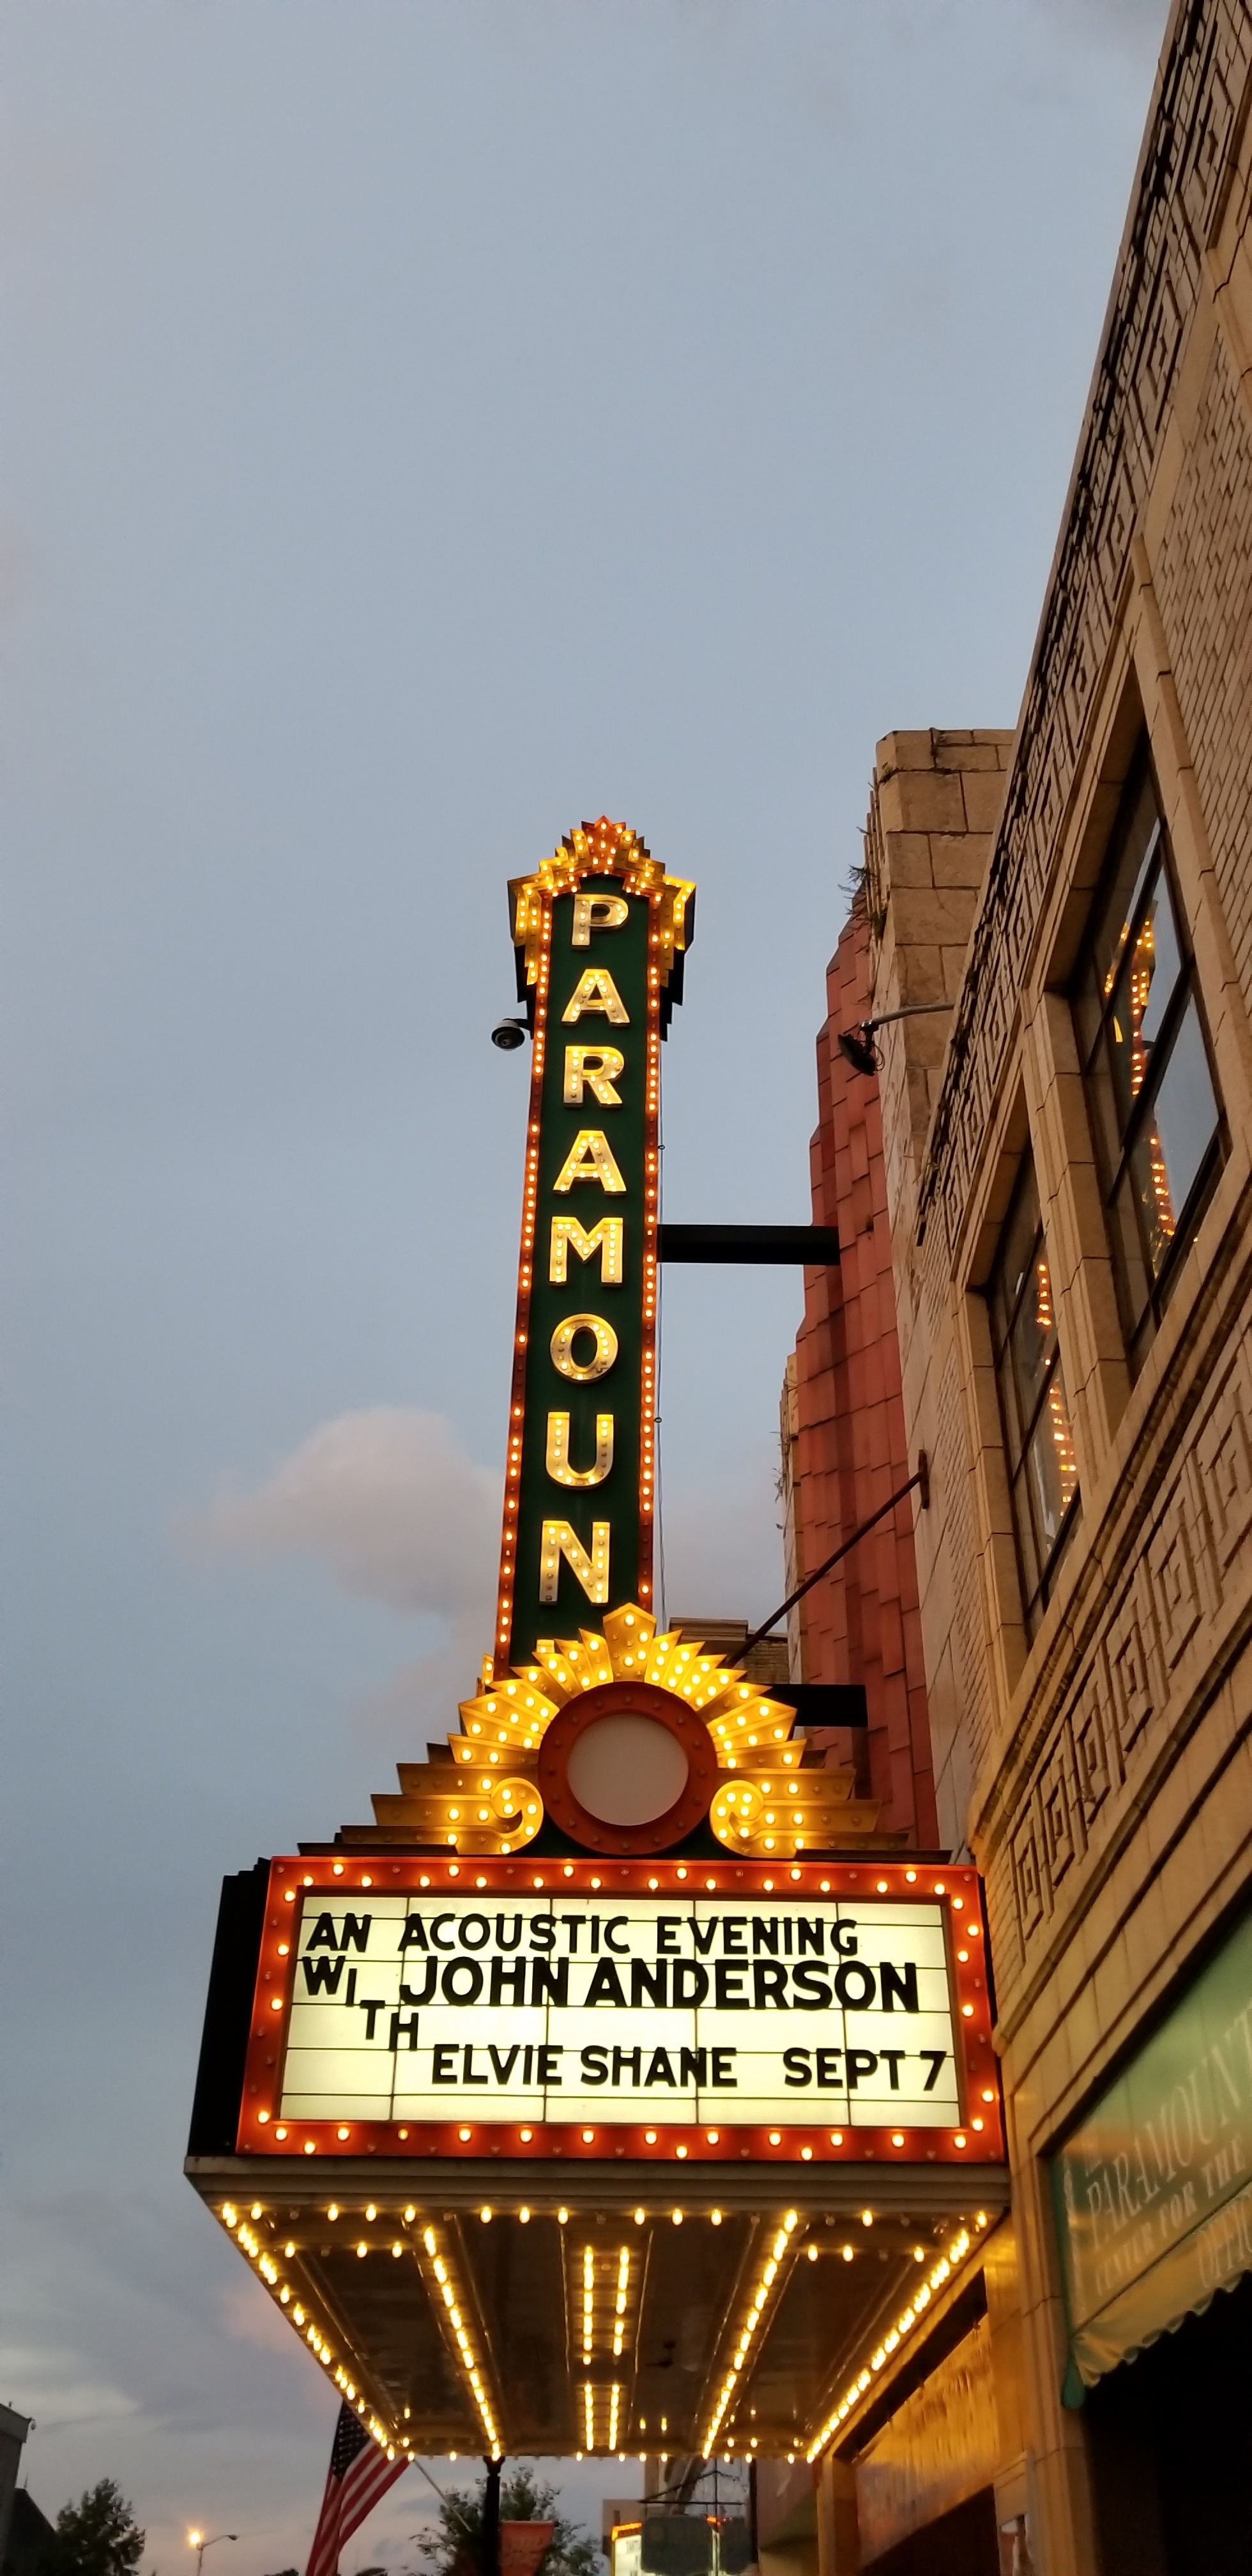 Opened in 1931, this classic theater fell on hard times shutting down in 1979. Reopened in the 1990's the theater is now the centerpiece of downtown revitalization in Bristol.